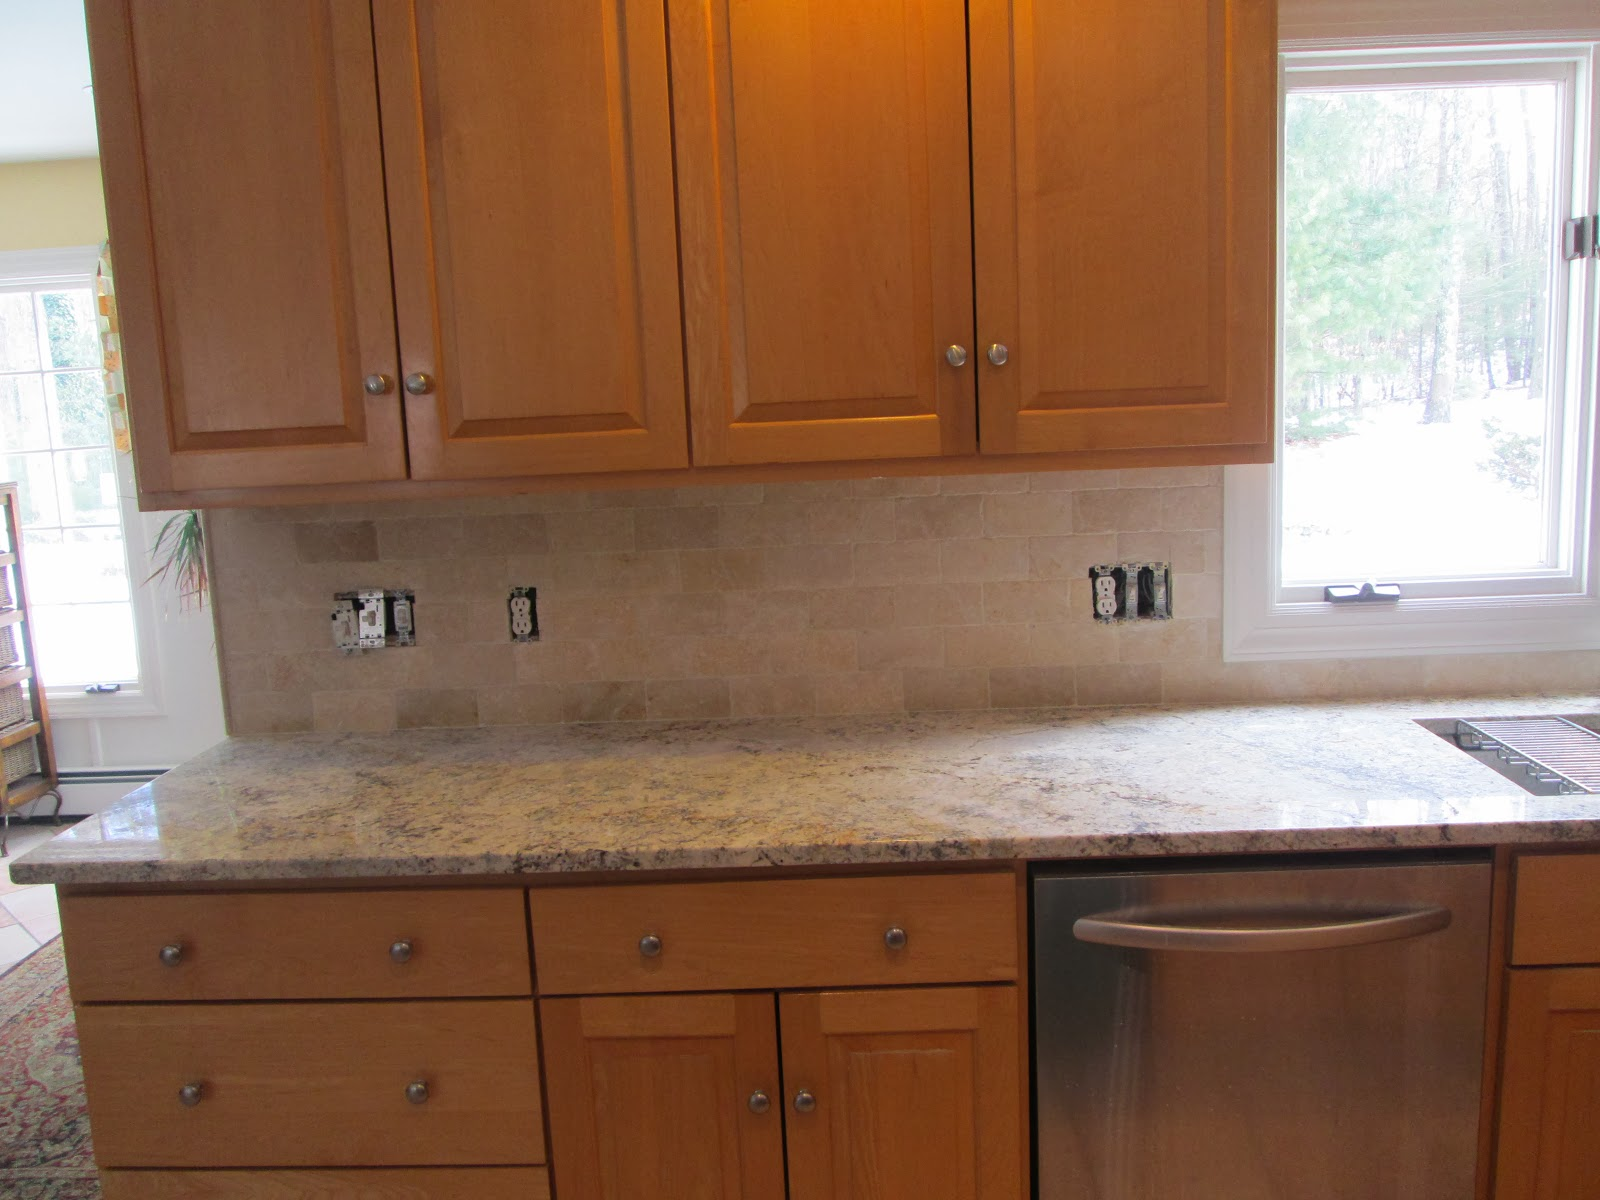 how much does tile backsplash installation cost a tile backsplash